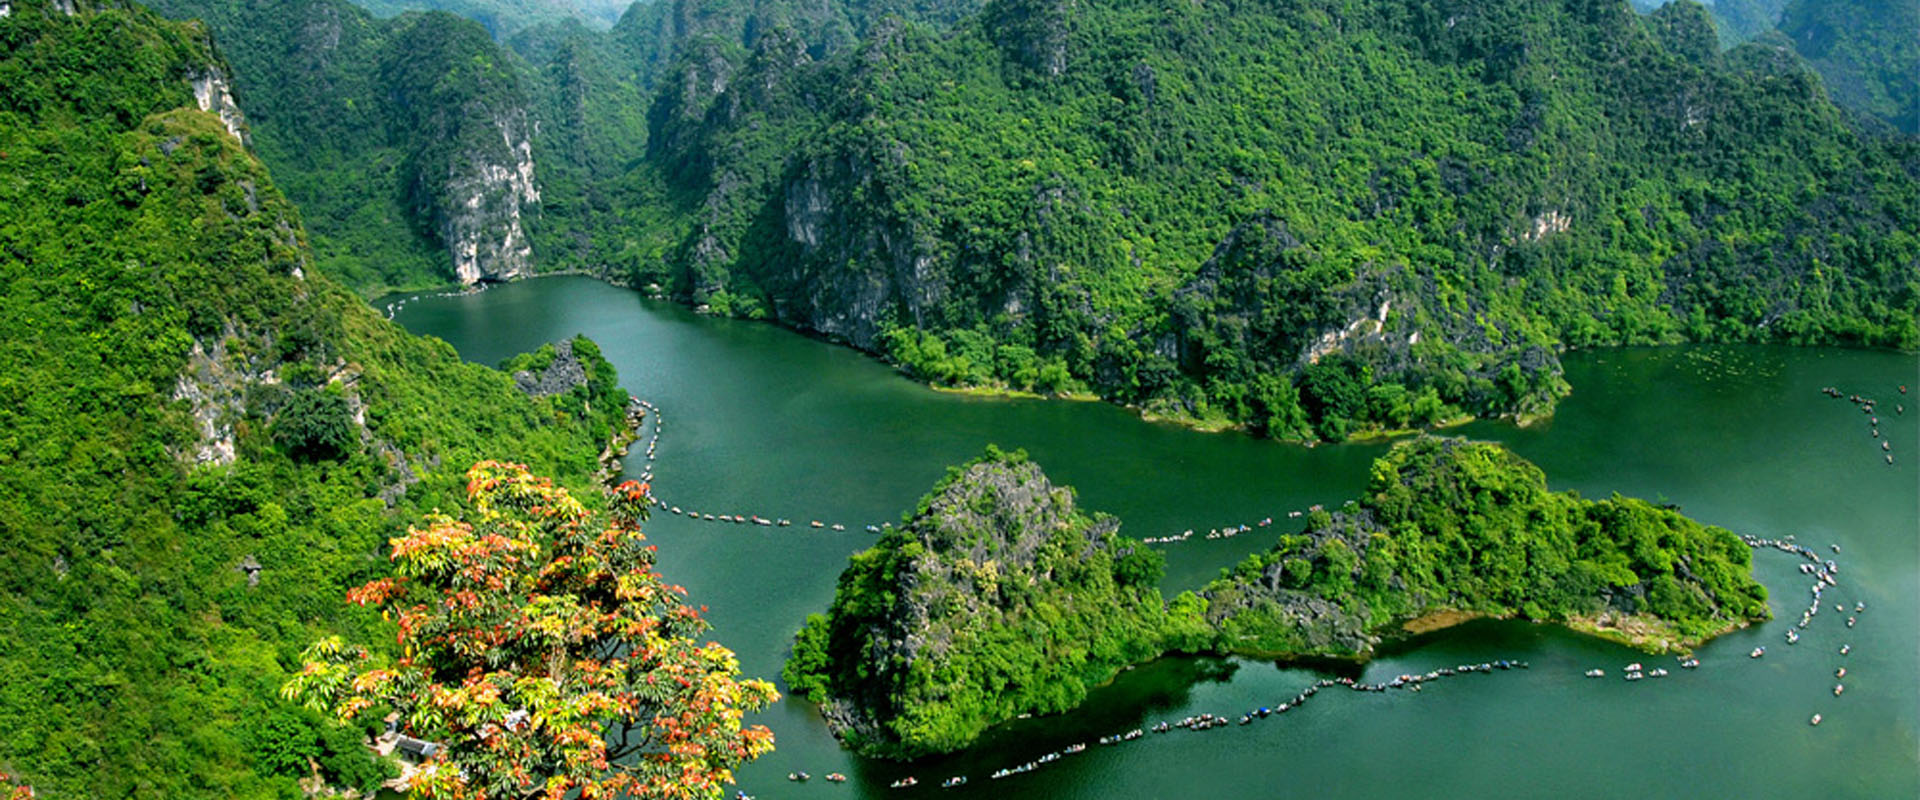 Vietnam listed among 10 fastest-growing foreign tourist destinations